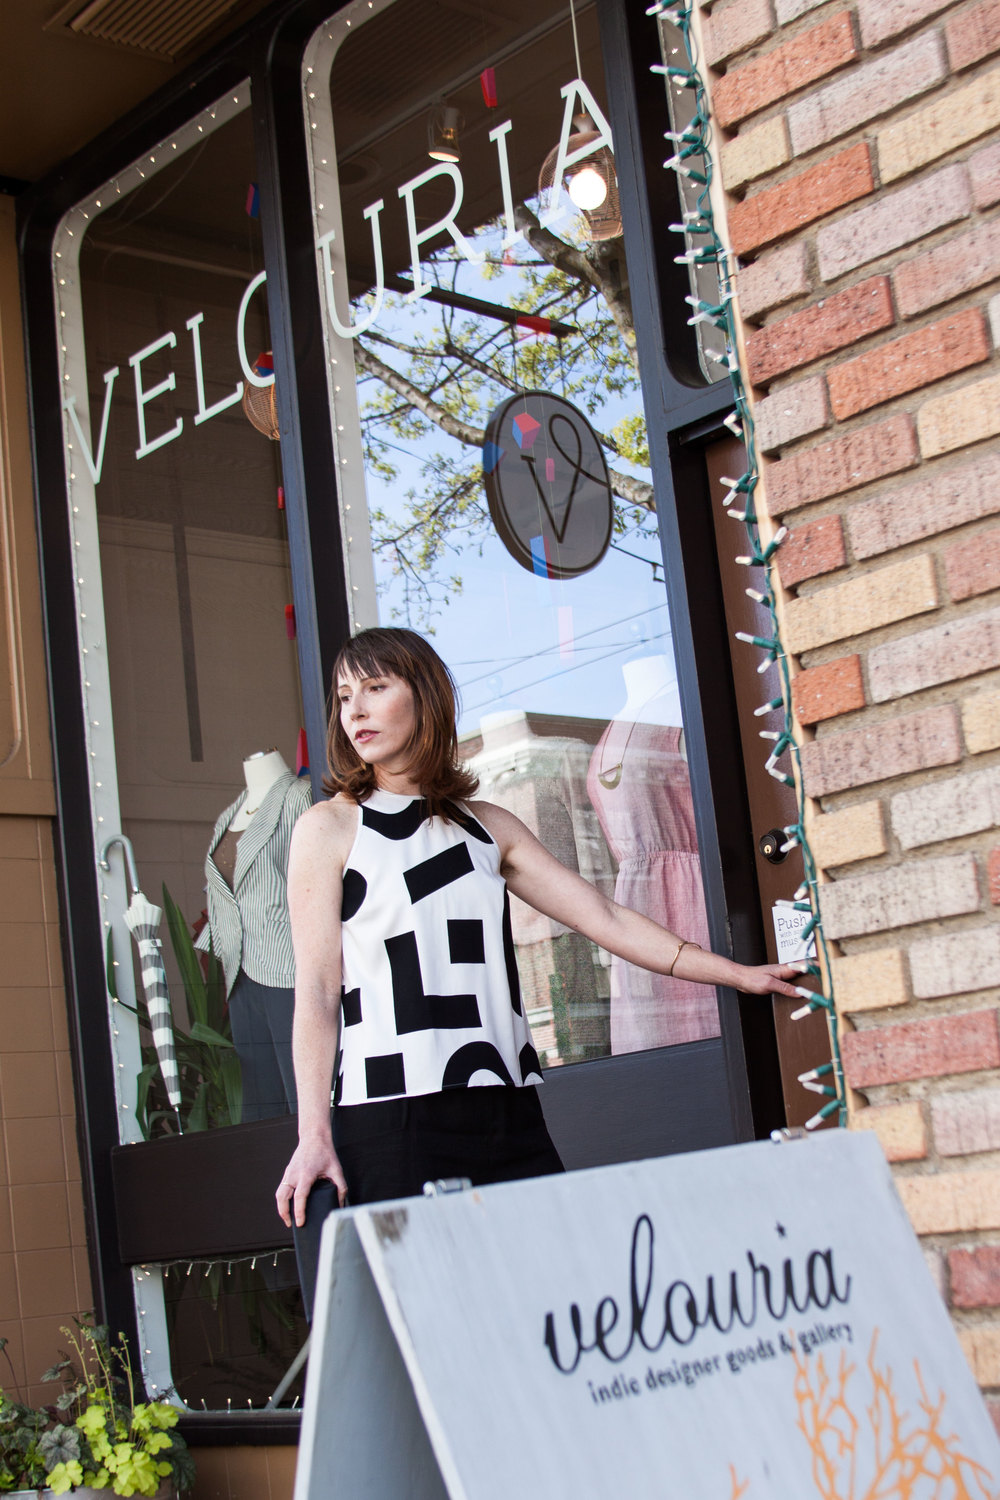 Amanda shows off a Dusen Dusen sleeveless top in front of the store on Market Street in Ballard. Photos by Selena Kearney.